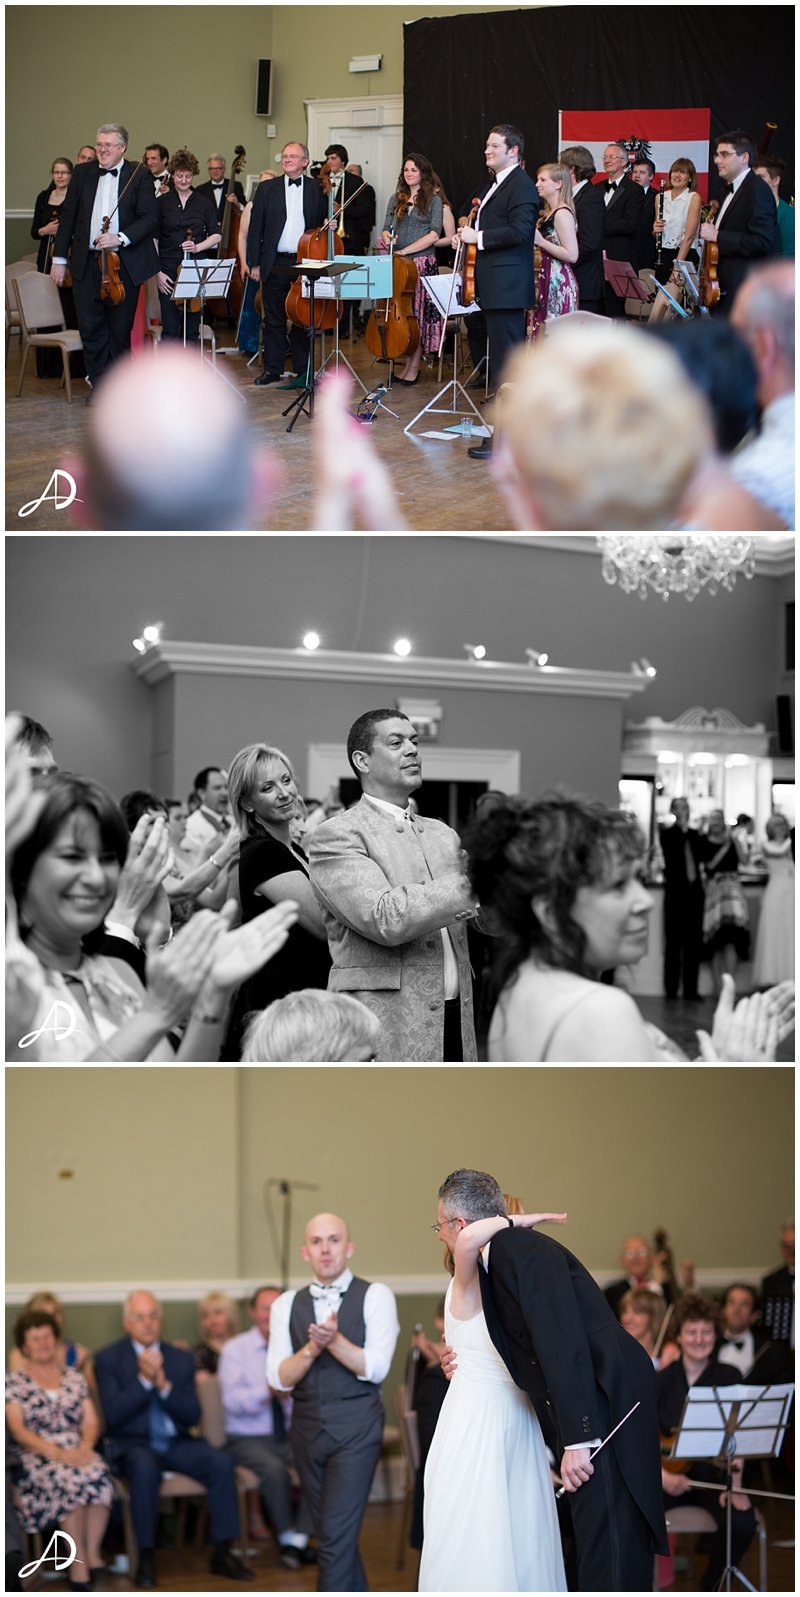 VIENNESE BALLROOM DANCE AT THE ASSEMBLY HOUSE, NORWICH - NORFOLK EVENT PHOTOGRAPHER 25